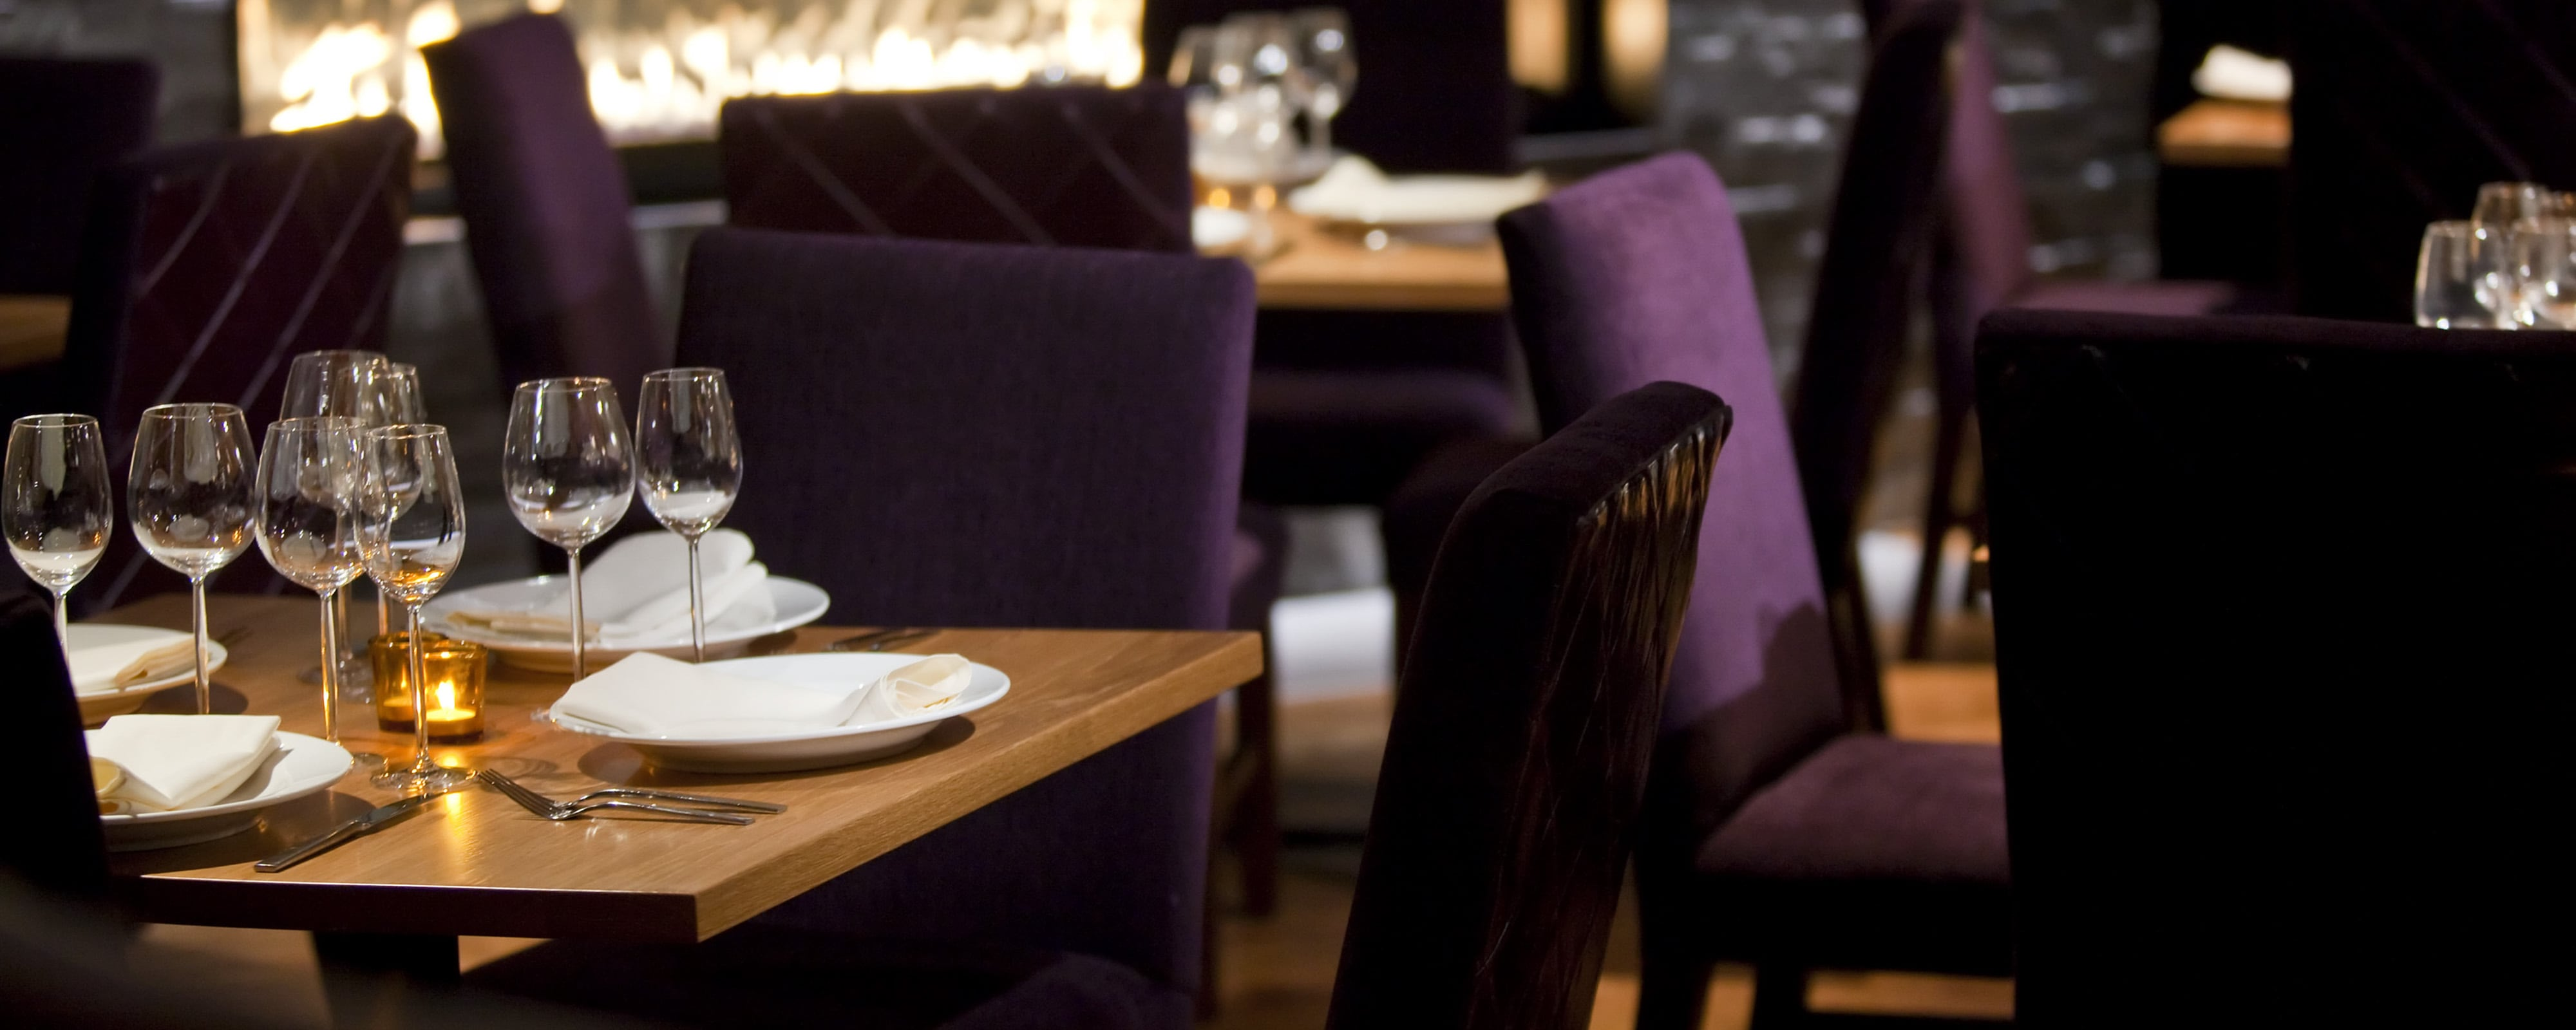 Hotelrestaurants in Renaissance Business Hotels